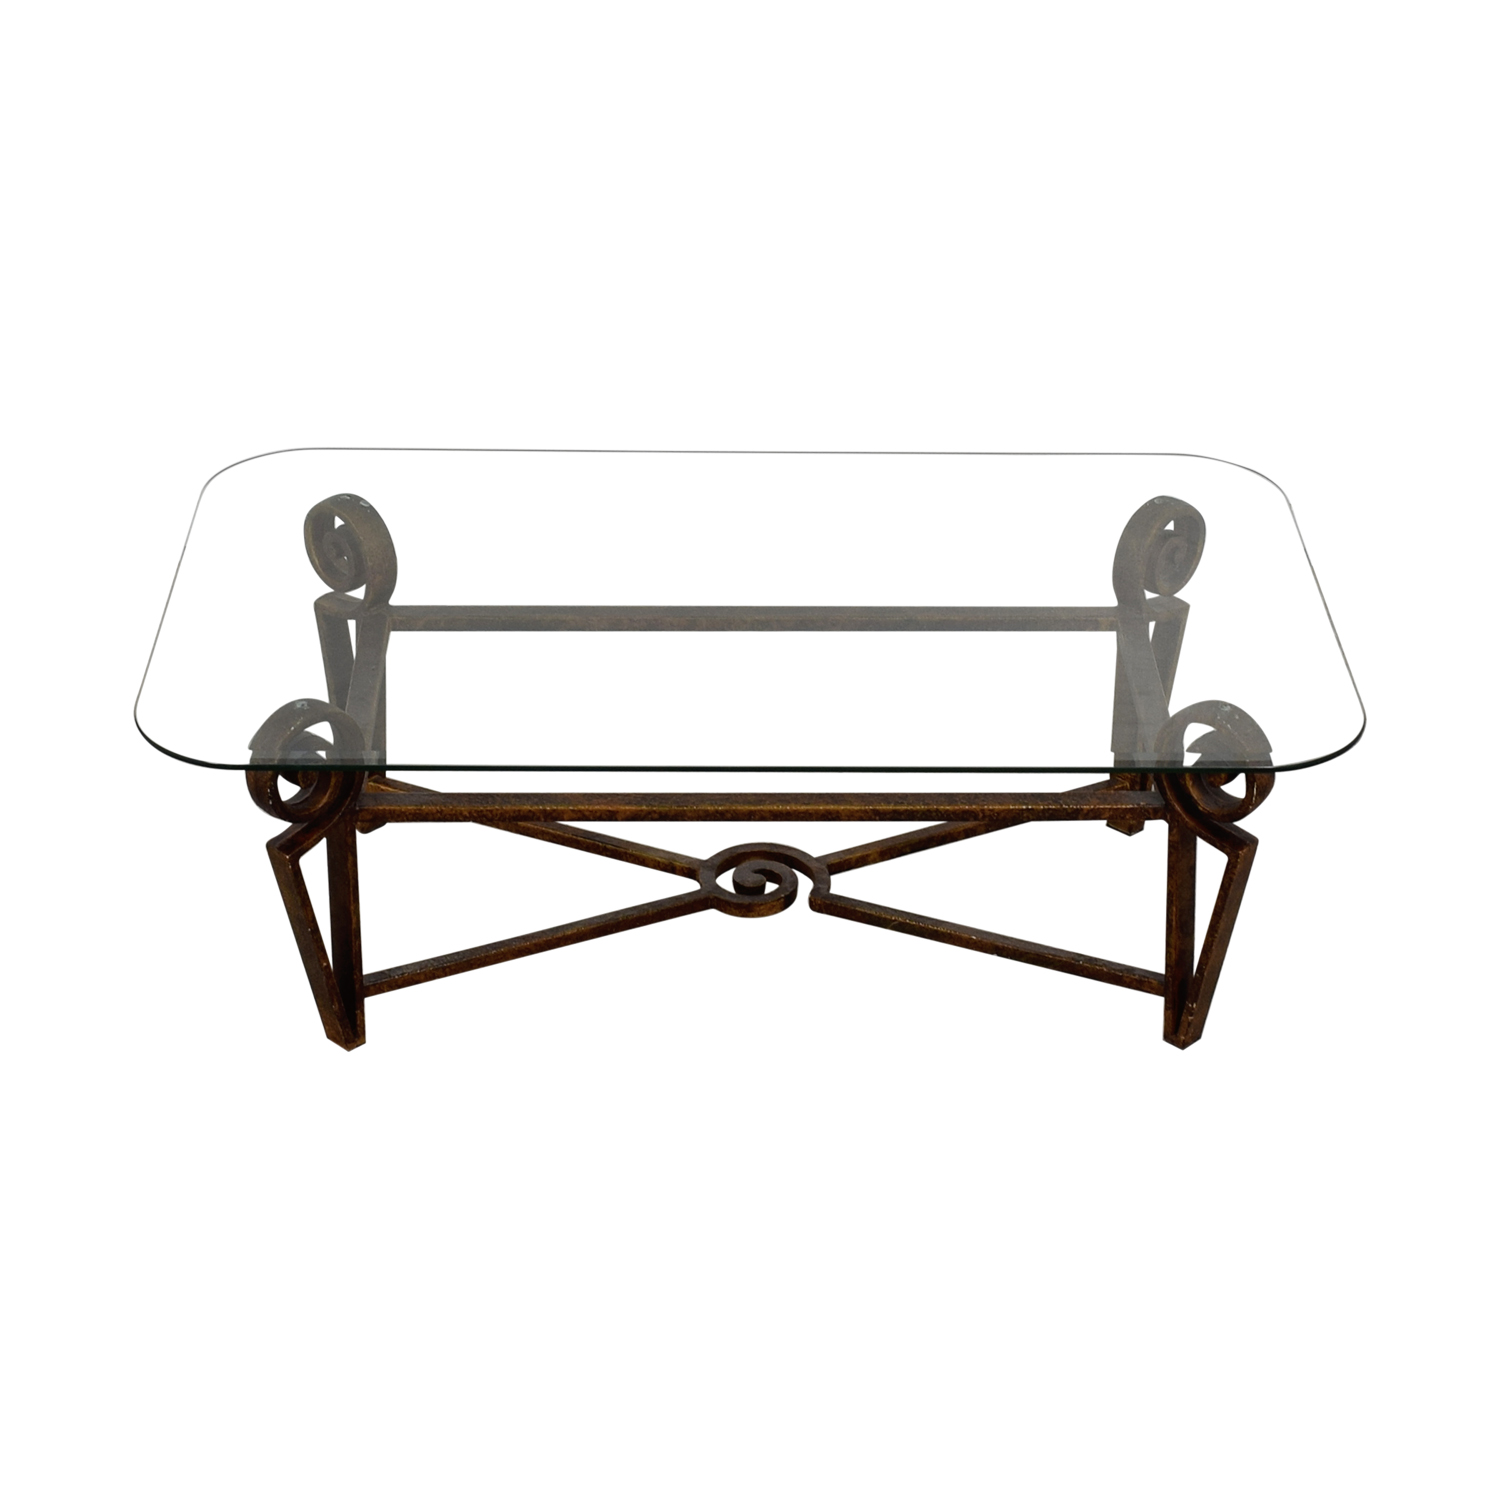 Glass Top and Metal Base Coffee Table dimensions